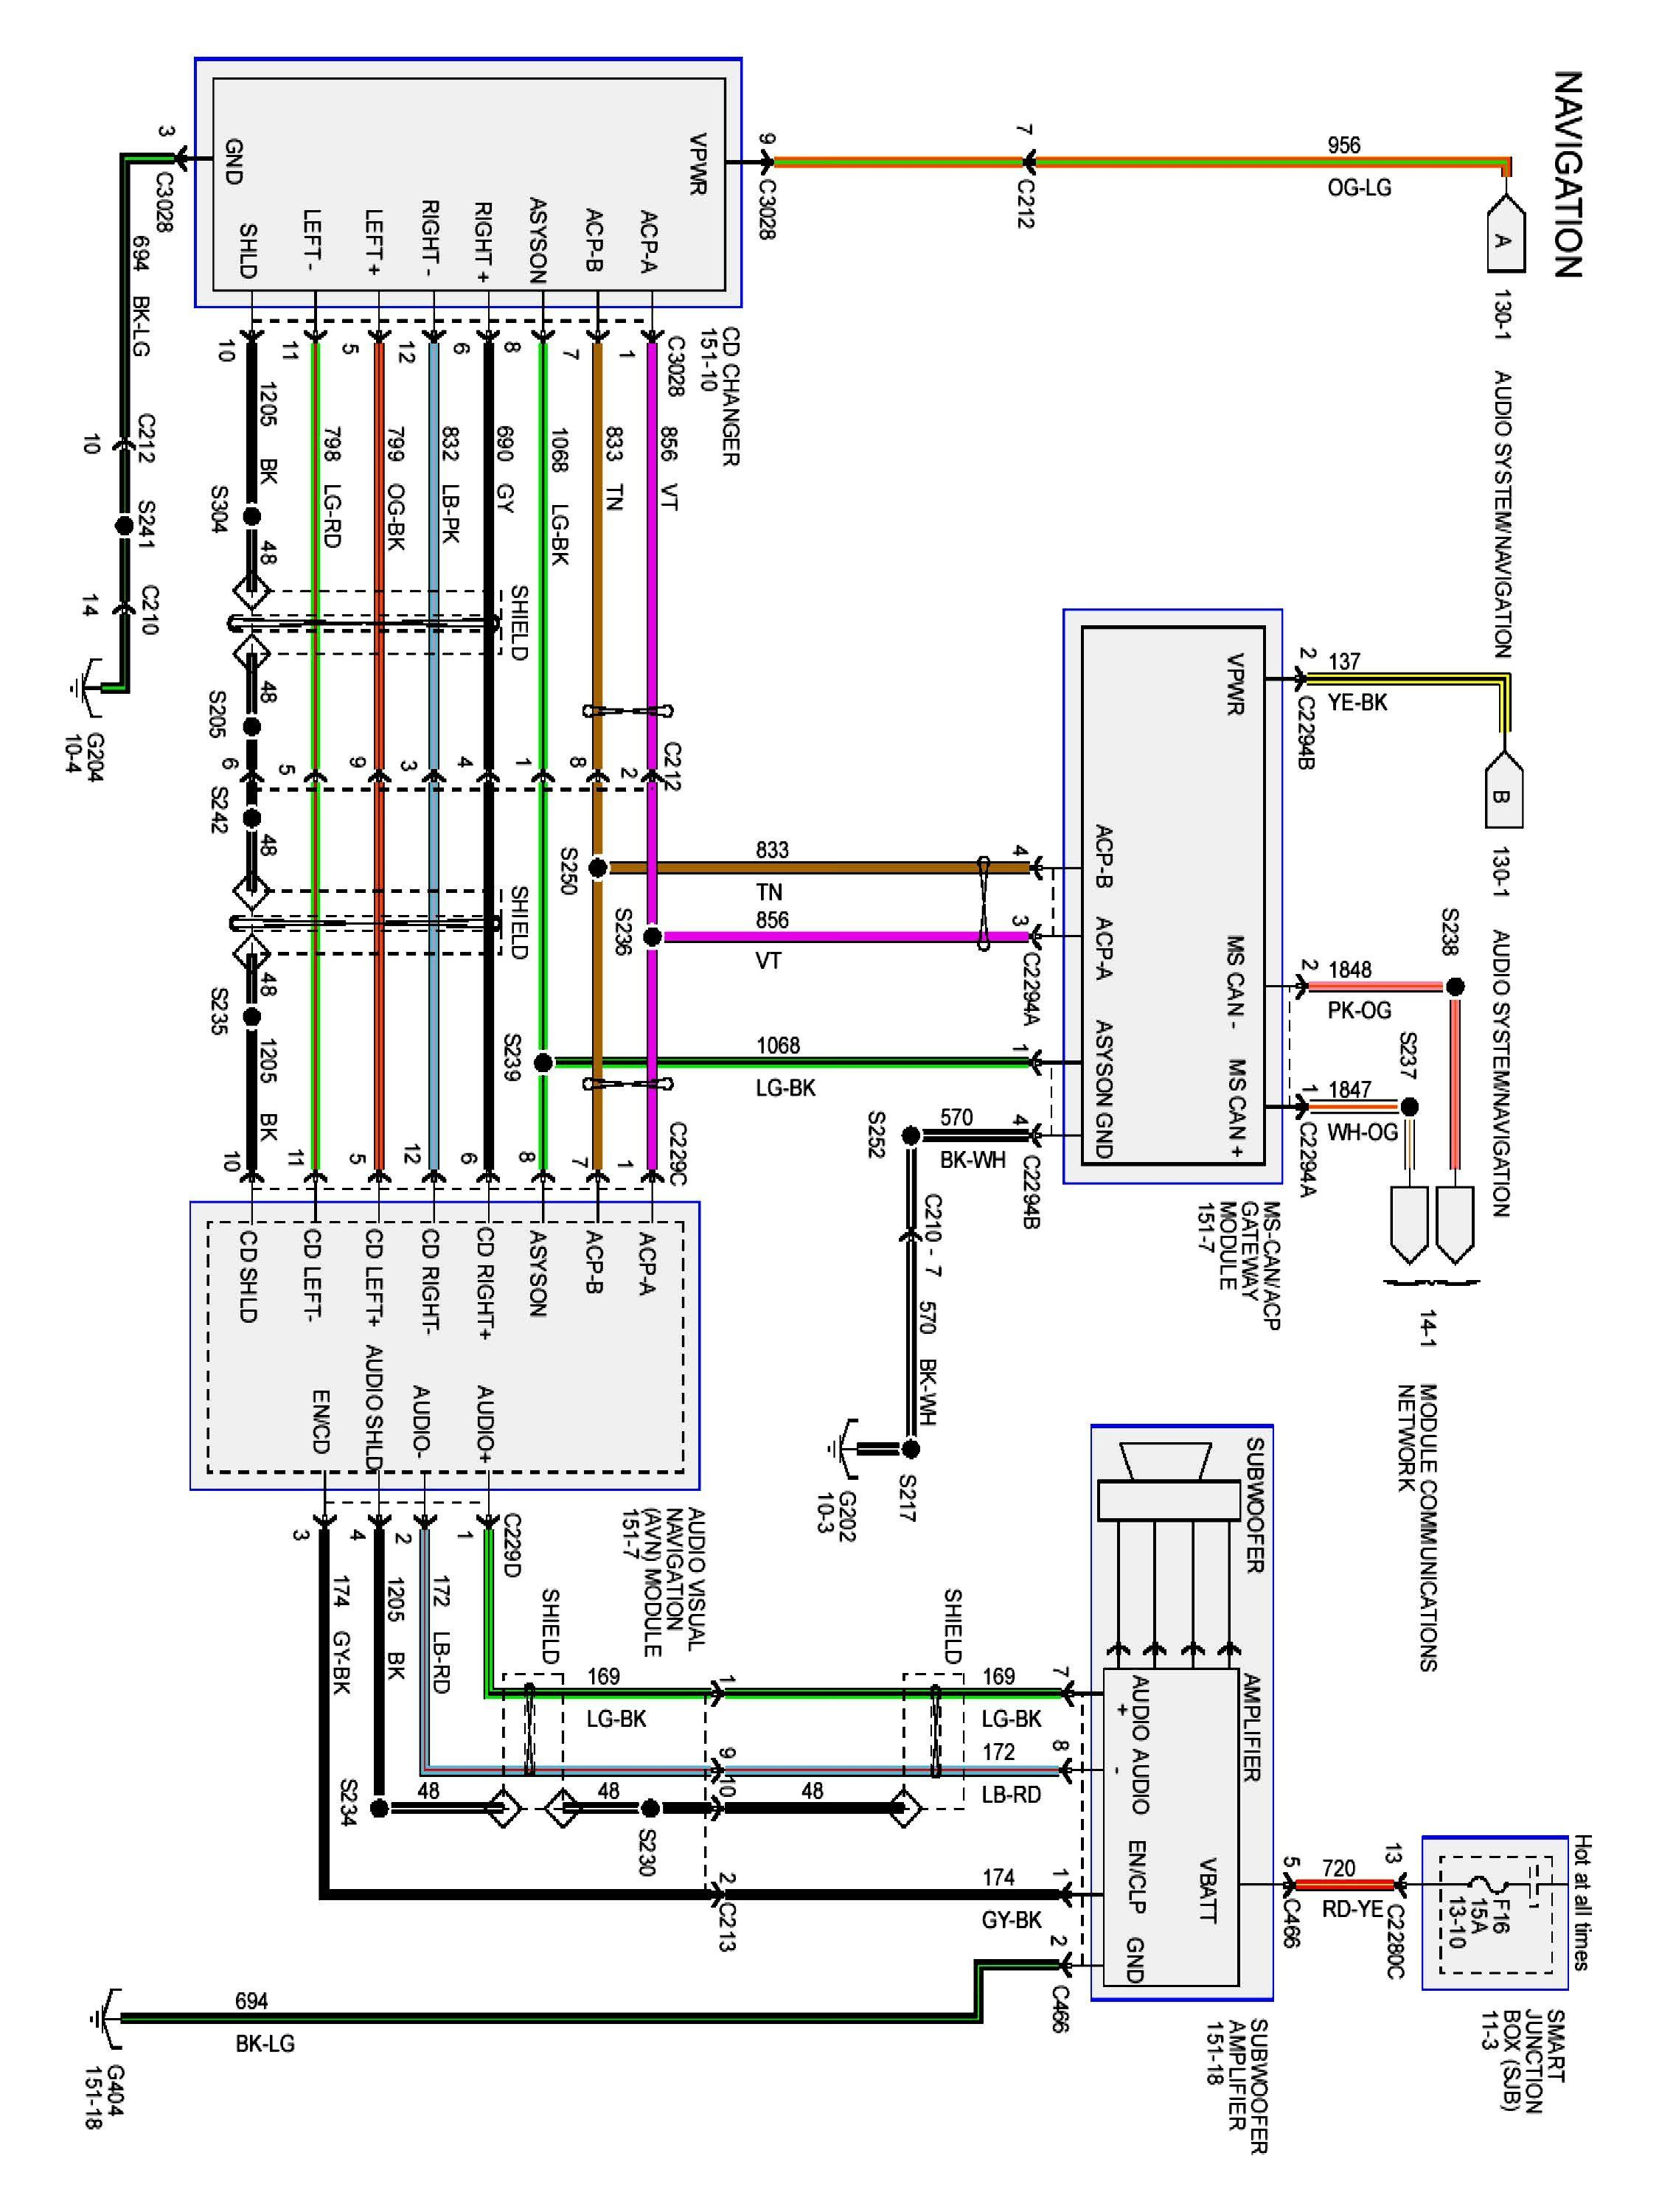 Toyota Jbl Amplifier Wiring Diagram - bookingritzcarlton.info in 2020 |  Ford expedition, Electrical wiring diagram, Electrical diagramPinterest